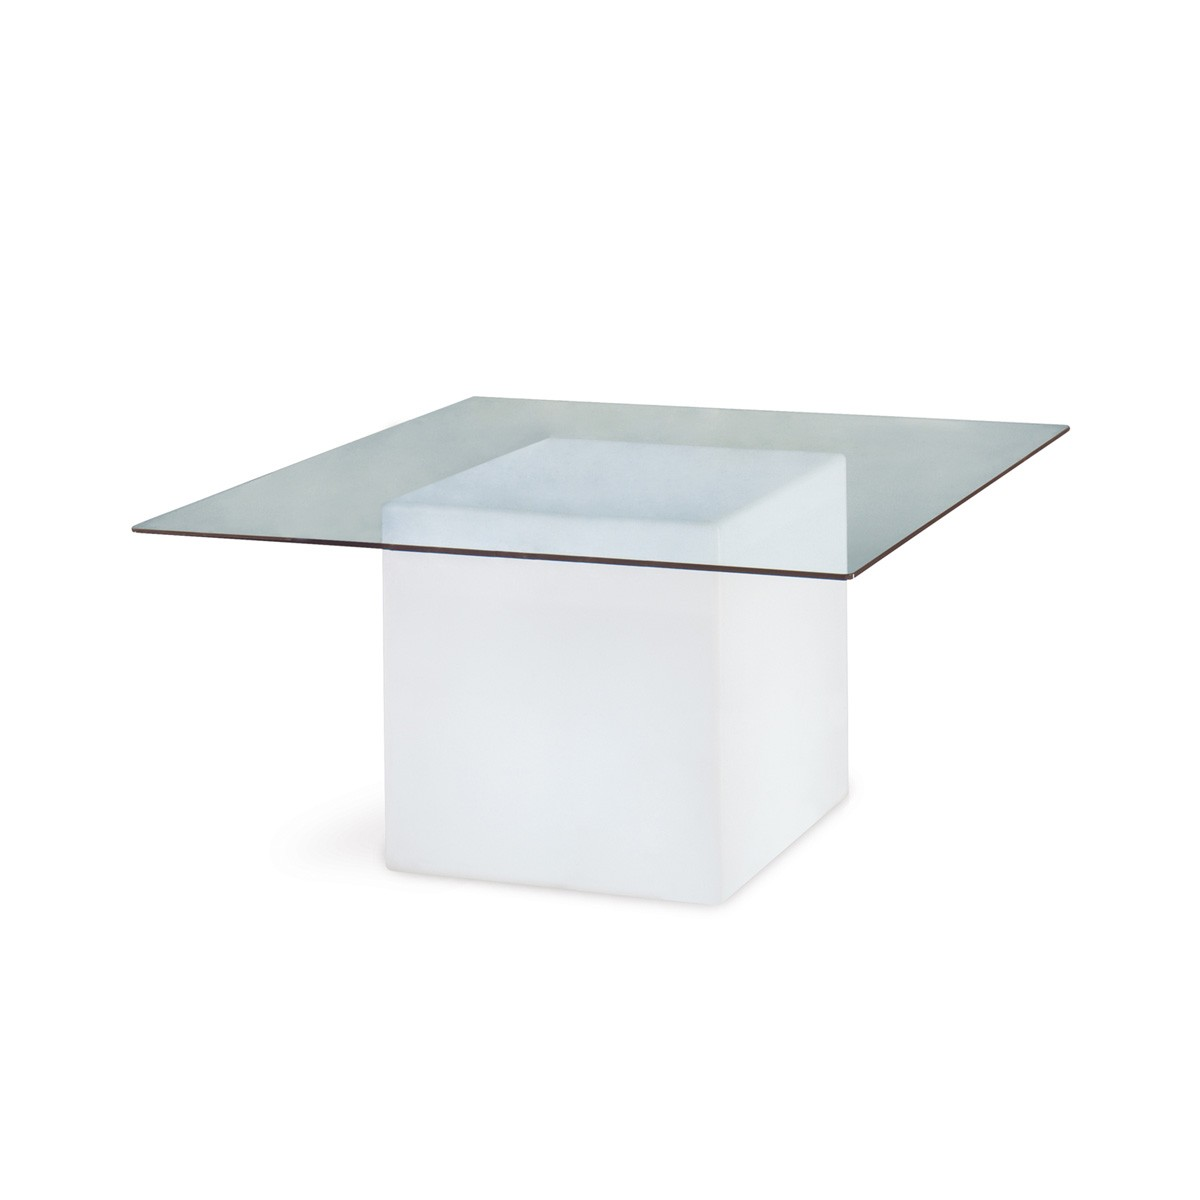 Square dining table from Slide